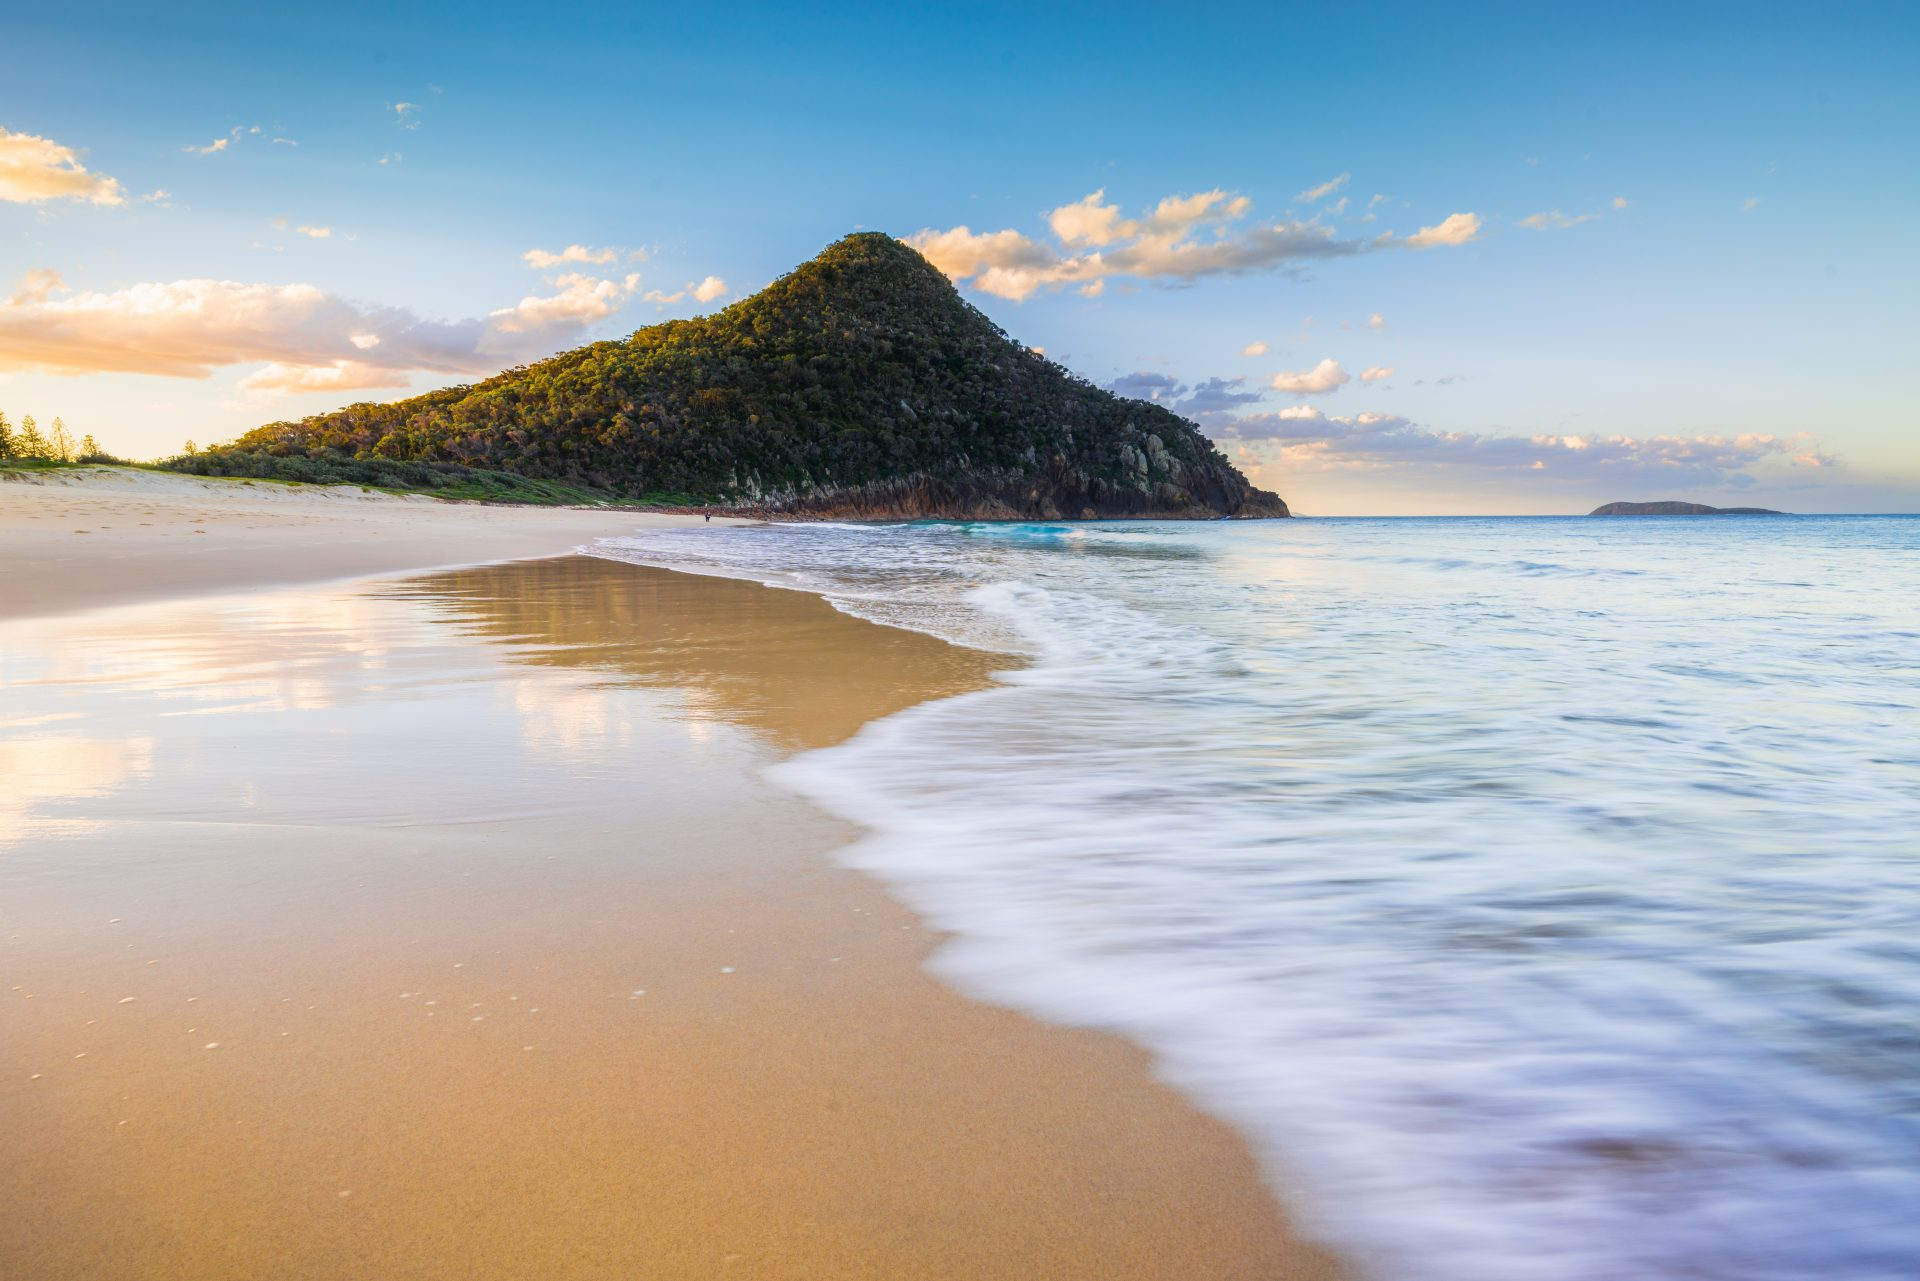 Zenith Beach, Shoal Bay, NSW, Australia's hidden gem